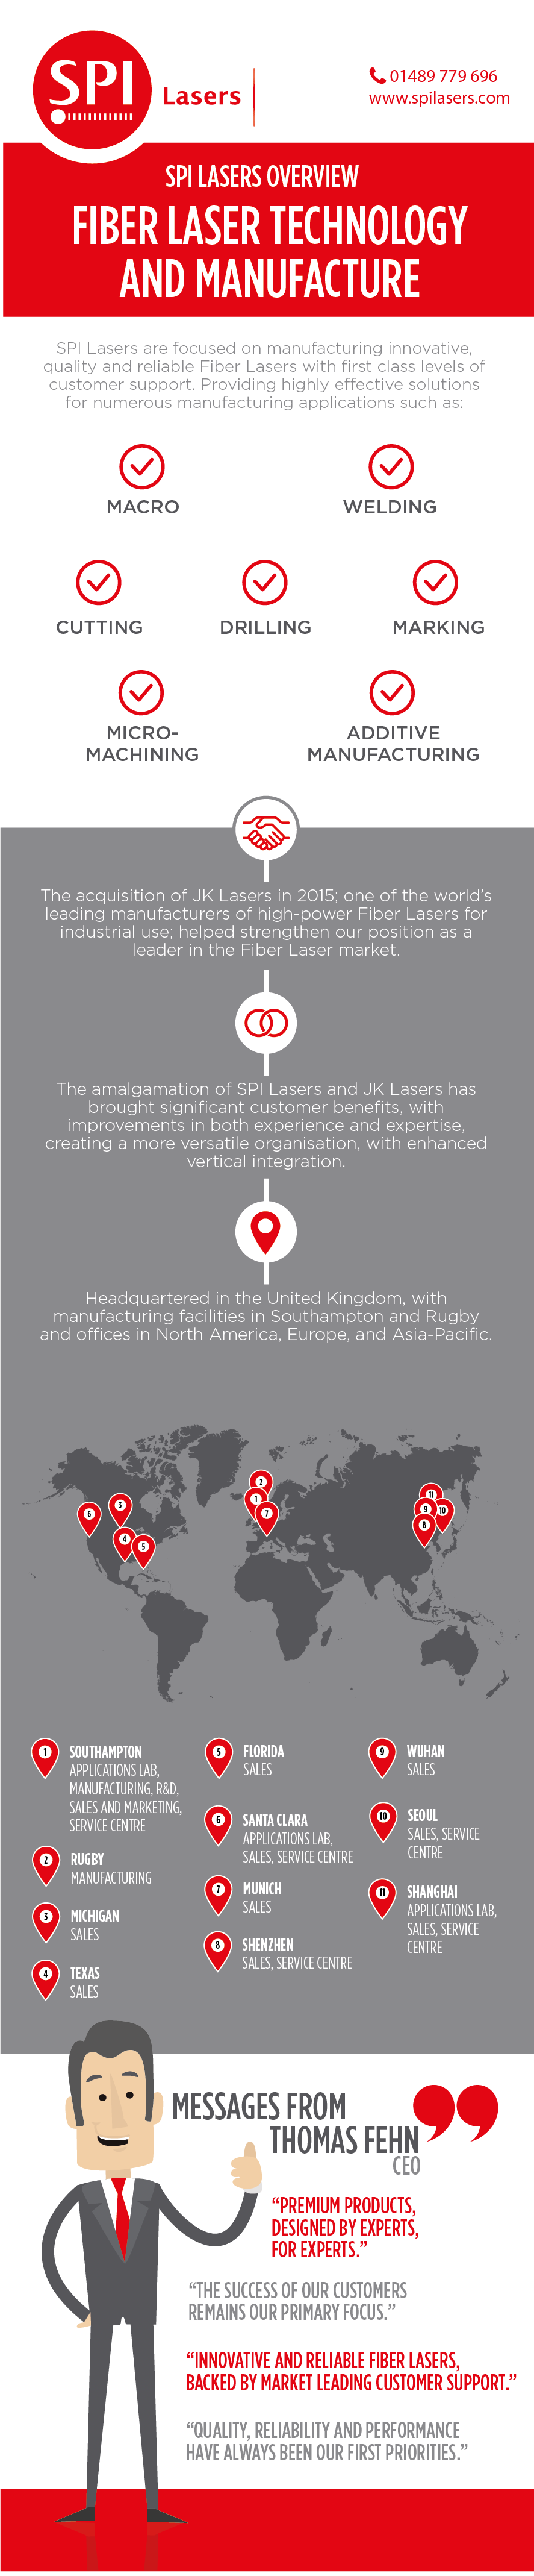 SPI Lasers Overview Infographic - Fiber Laser Technology and Manufacture-v2 01 - thumb